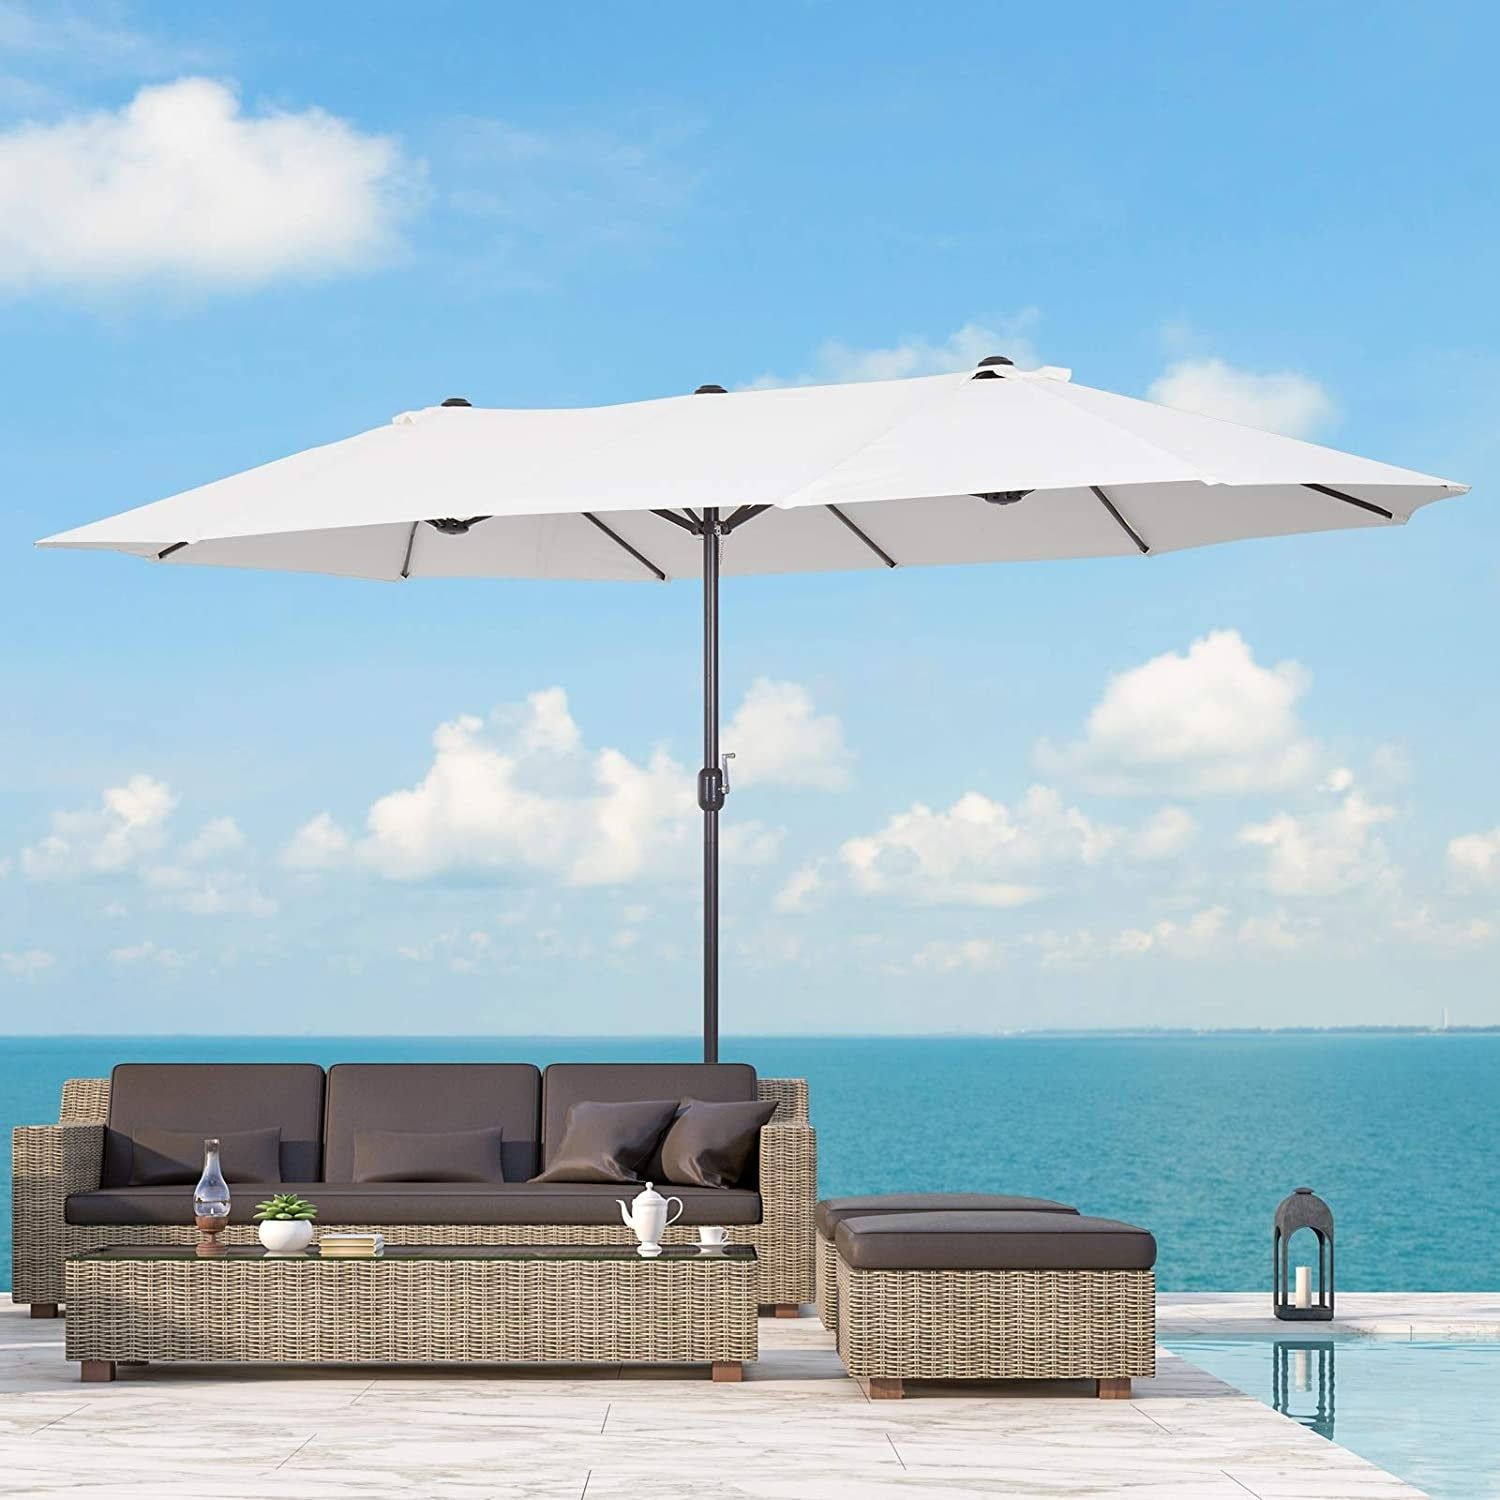 Outsunny 15 Foot Steel Rectangular Double Sided Market Umbrella In 2021 Patio Umbrella Patio Best Patio Umbrella 15 foot patio umbrella